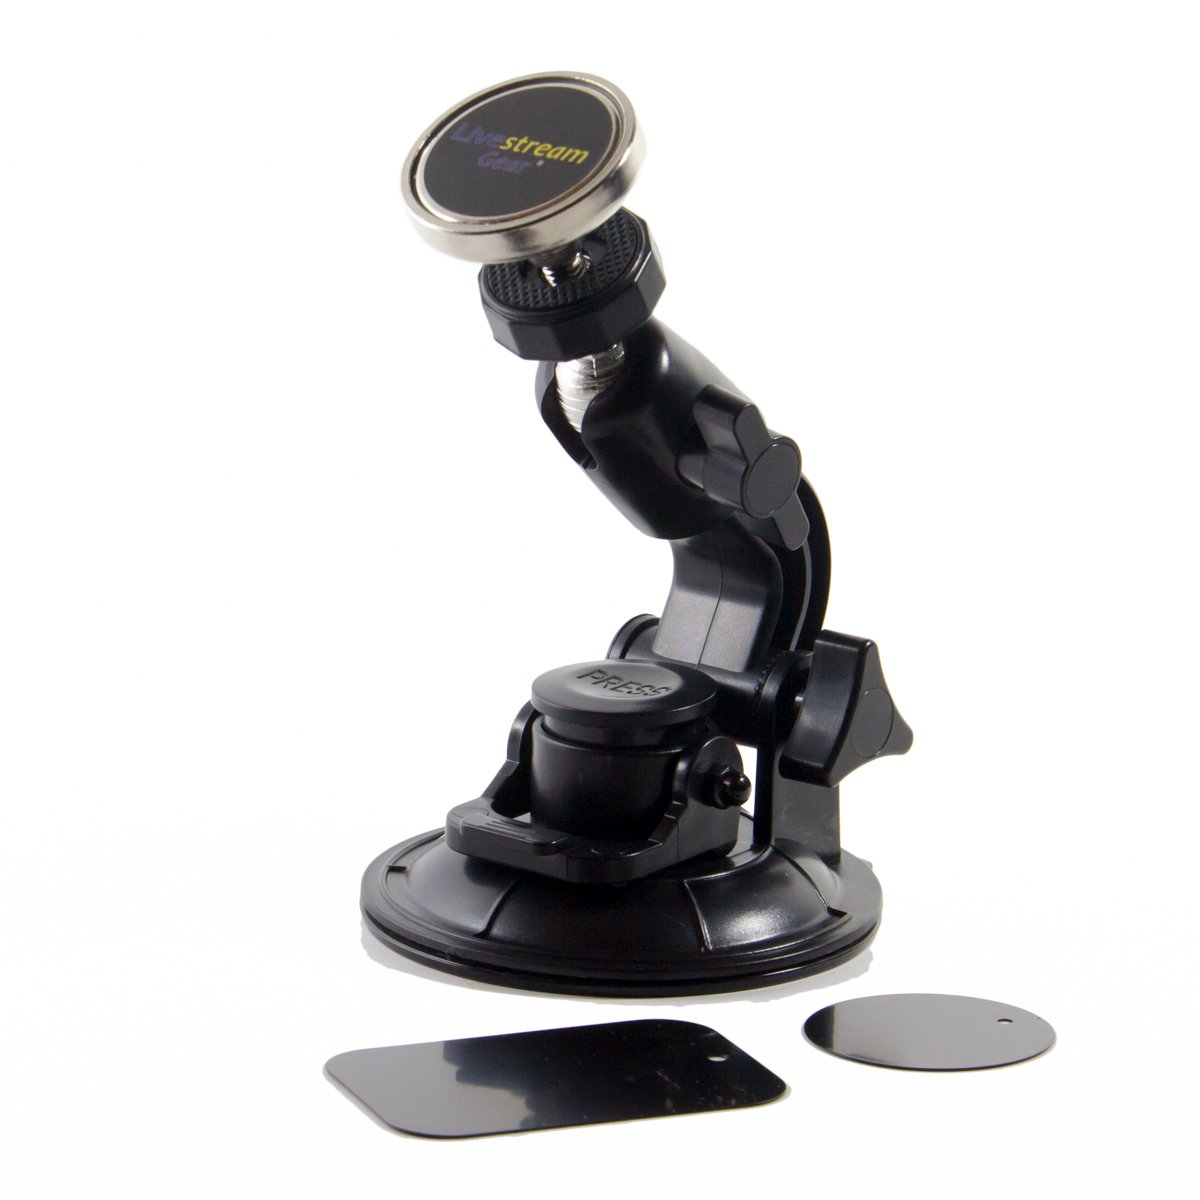 Cellfy Inc Livestream Gear Universal Magnetic Phone Mount and Suction Cup Mount for Glass//Windshield in Car//Truck Easily Attach a Phone to Glass Surfaces via Magnetic Mount and Metallic Plates Strong Hold 603